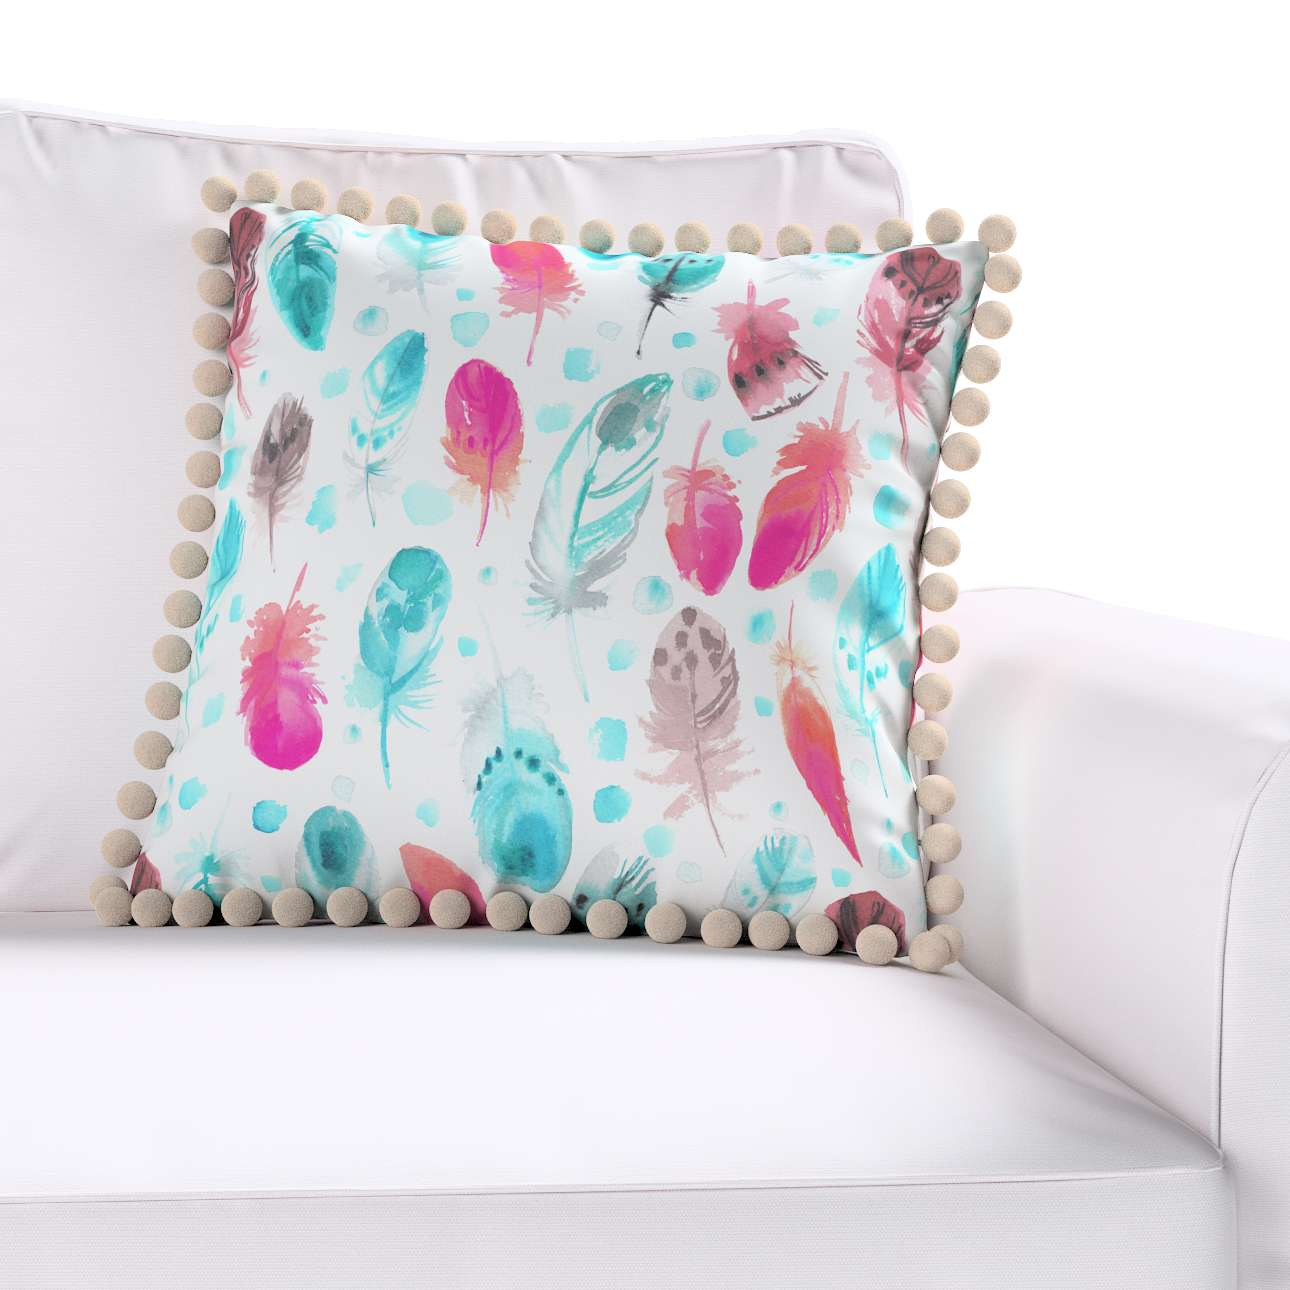 Daisy cushion covers with pom poms in collection Magic Collection, fabric: 500-17